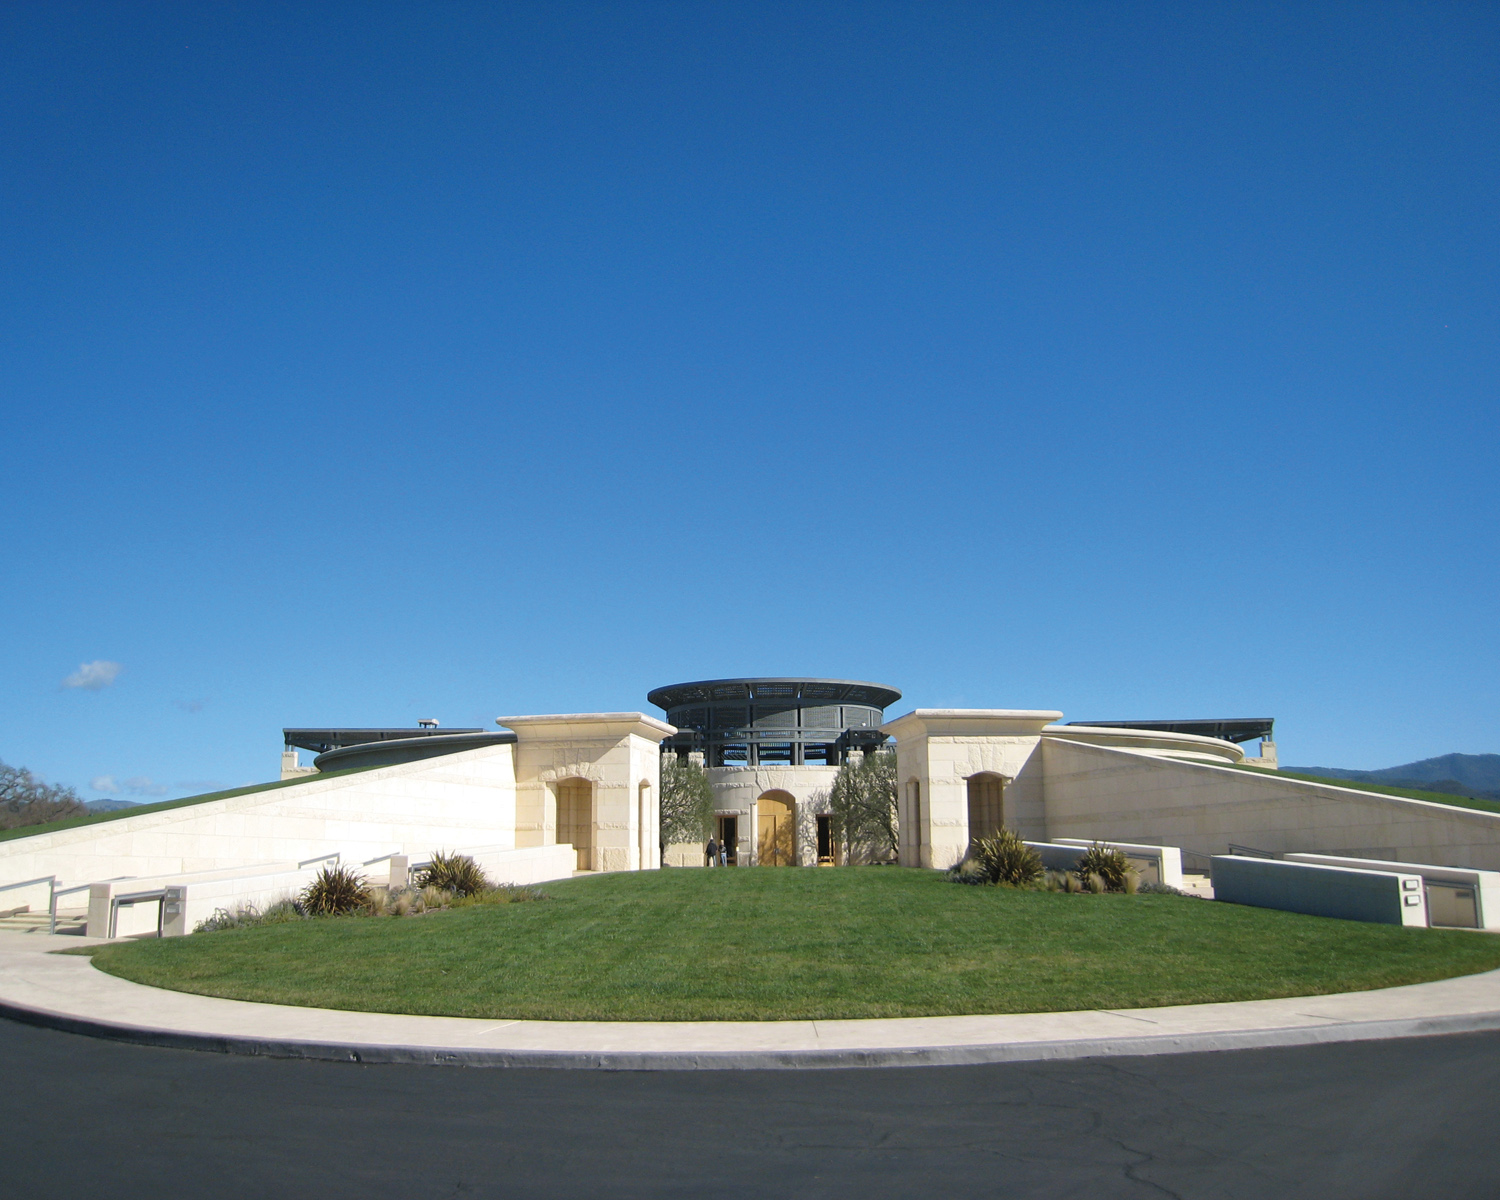 Opus One Winery American Hydrotech Inc